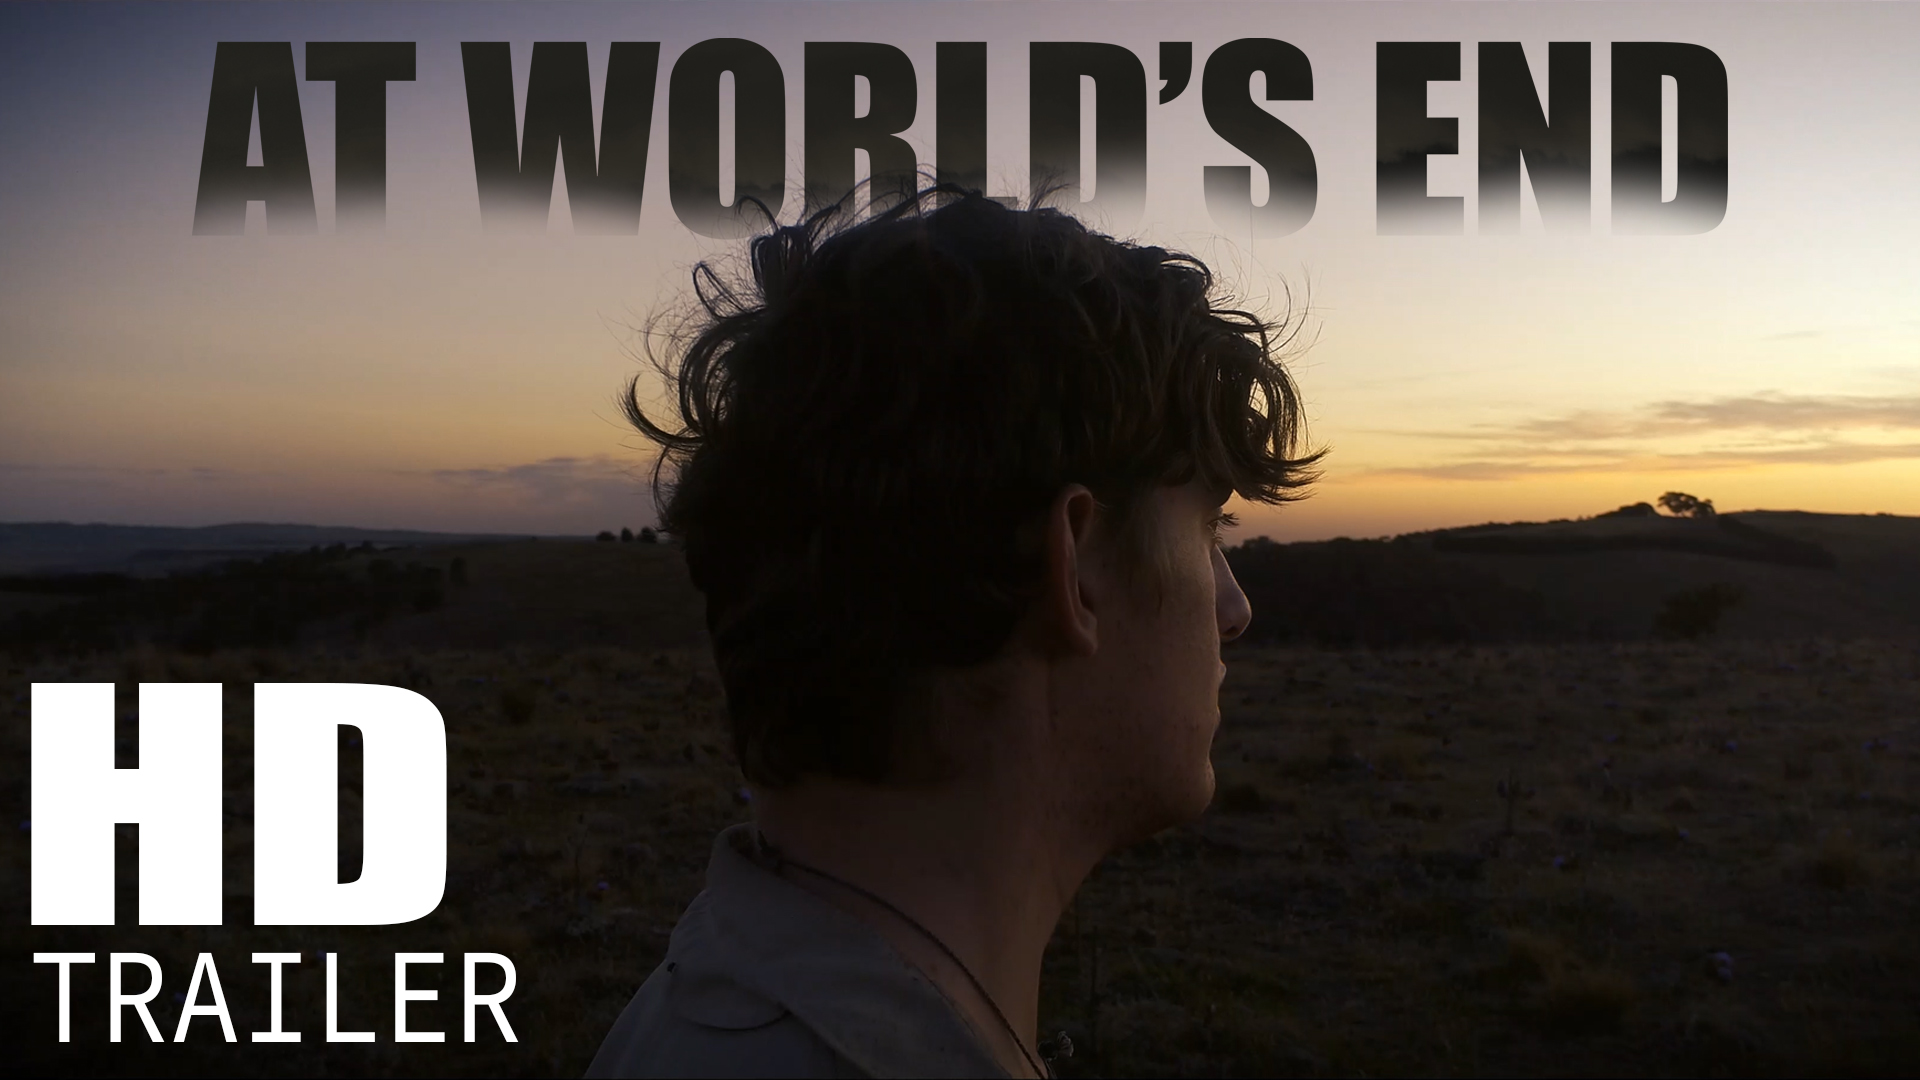 At World's End Trailer